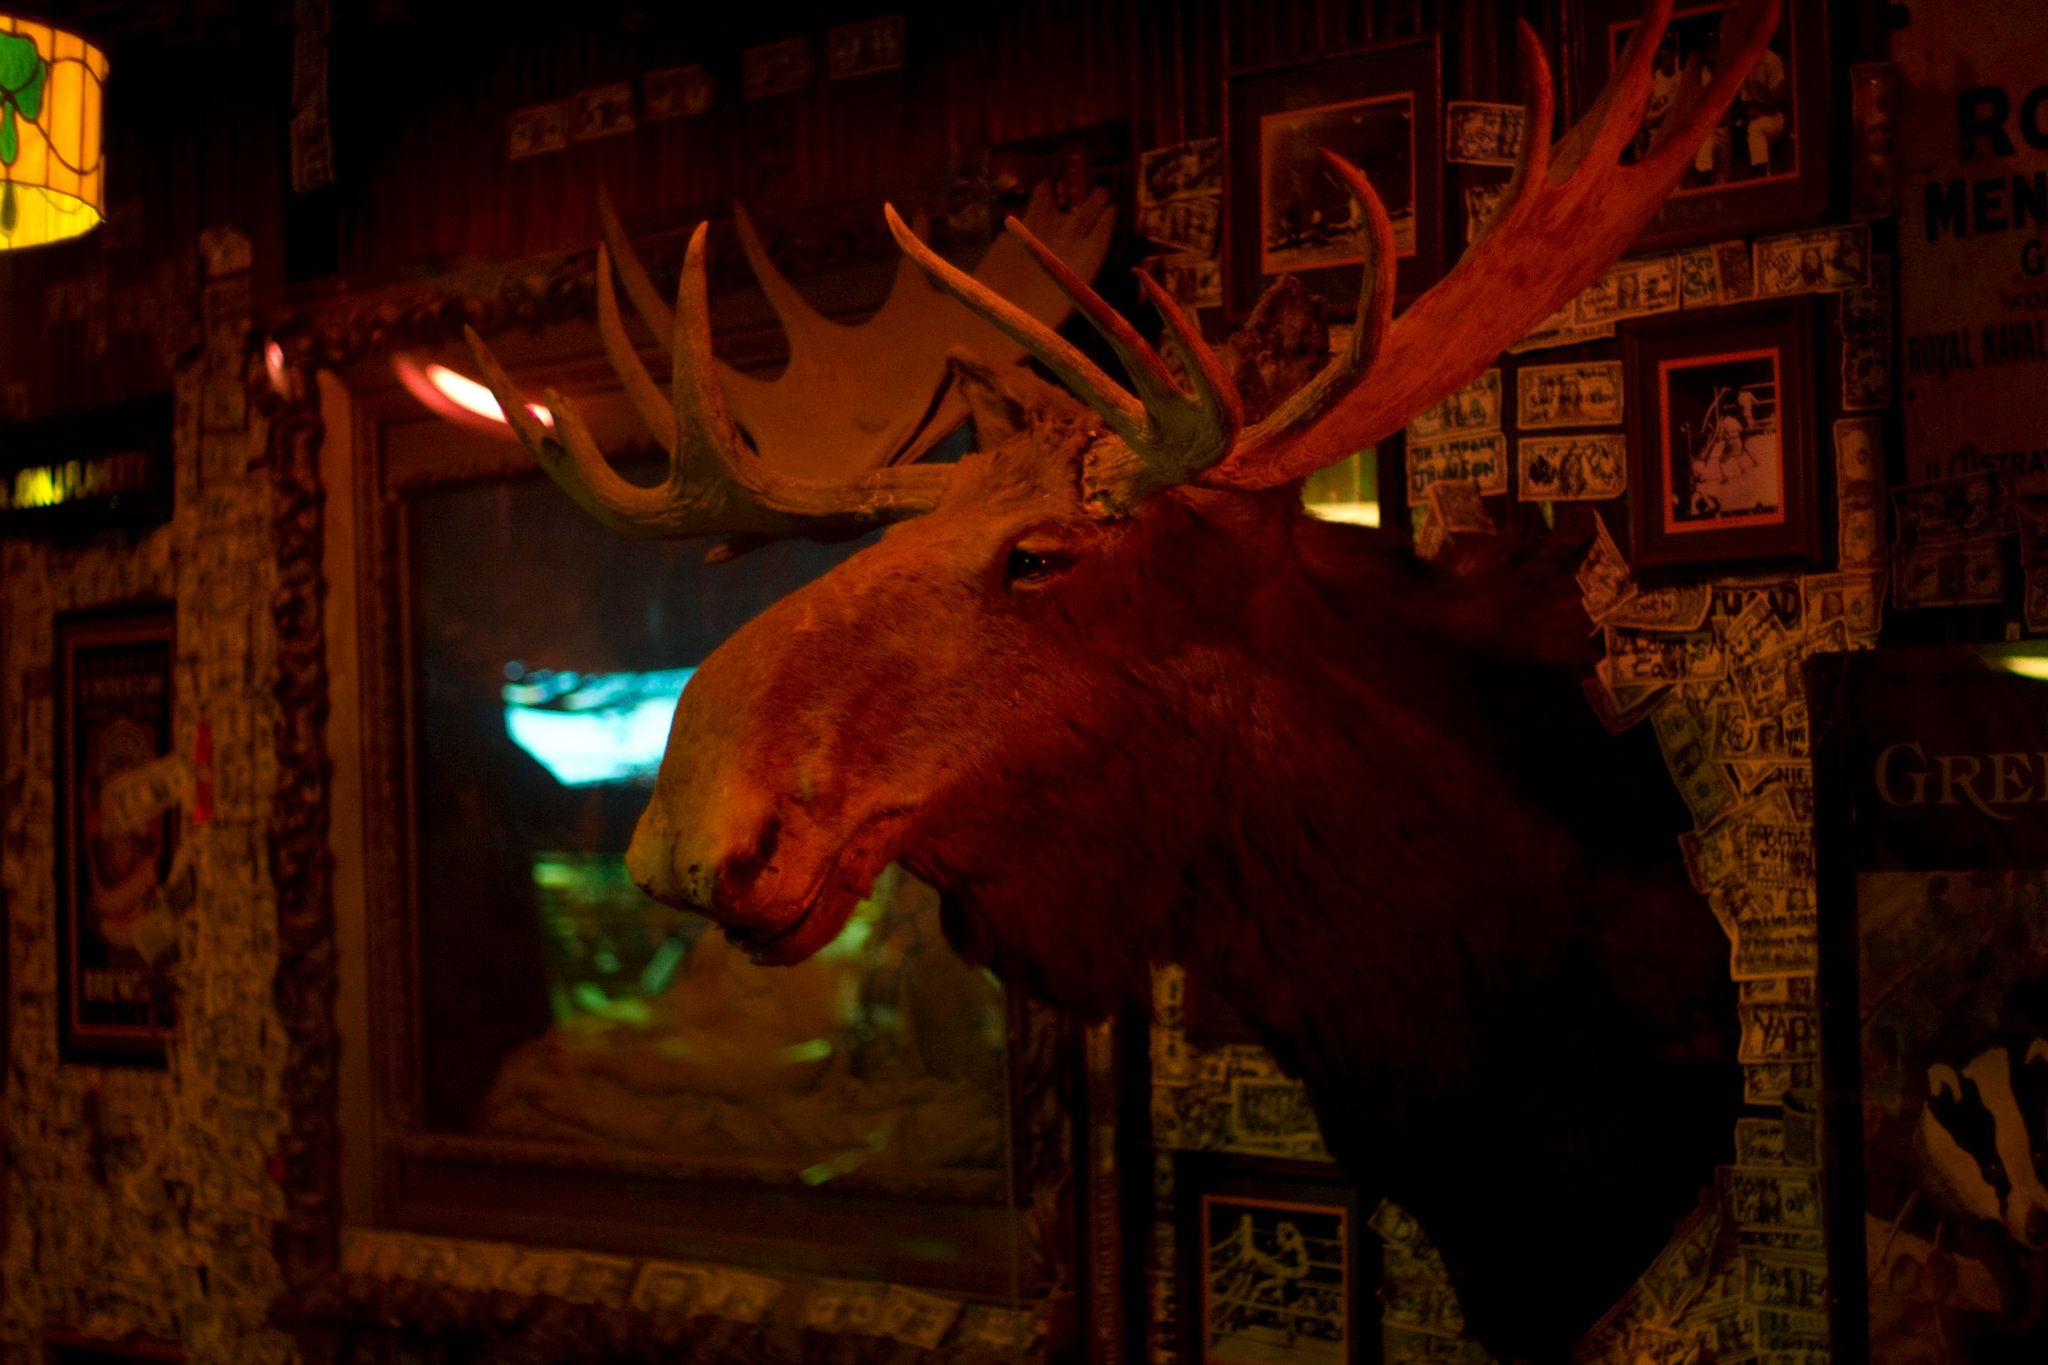 The Moose at McGuires Destin